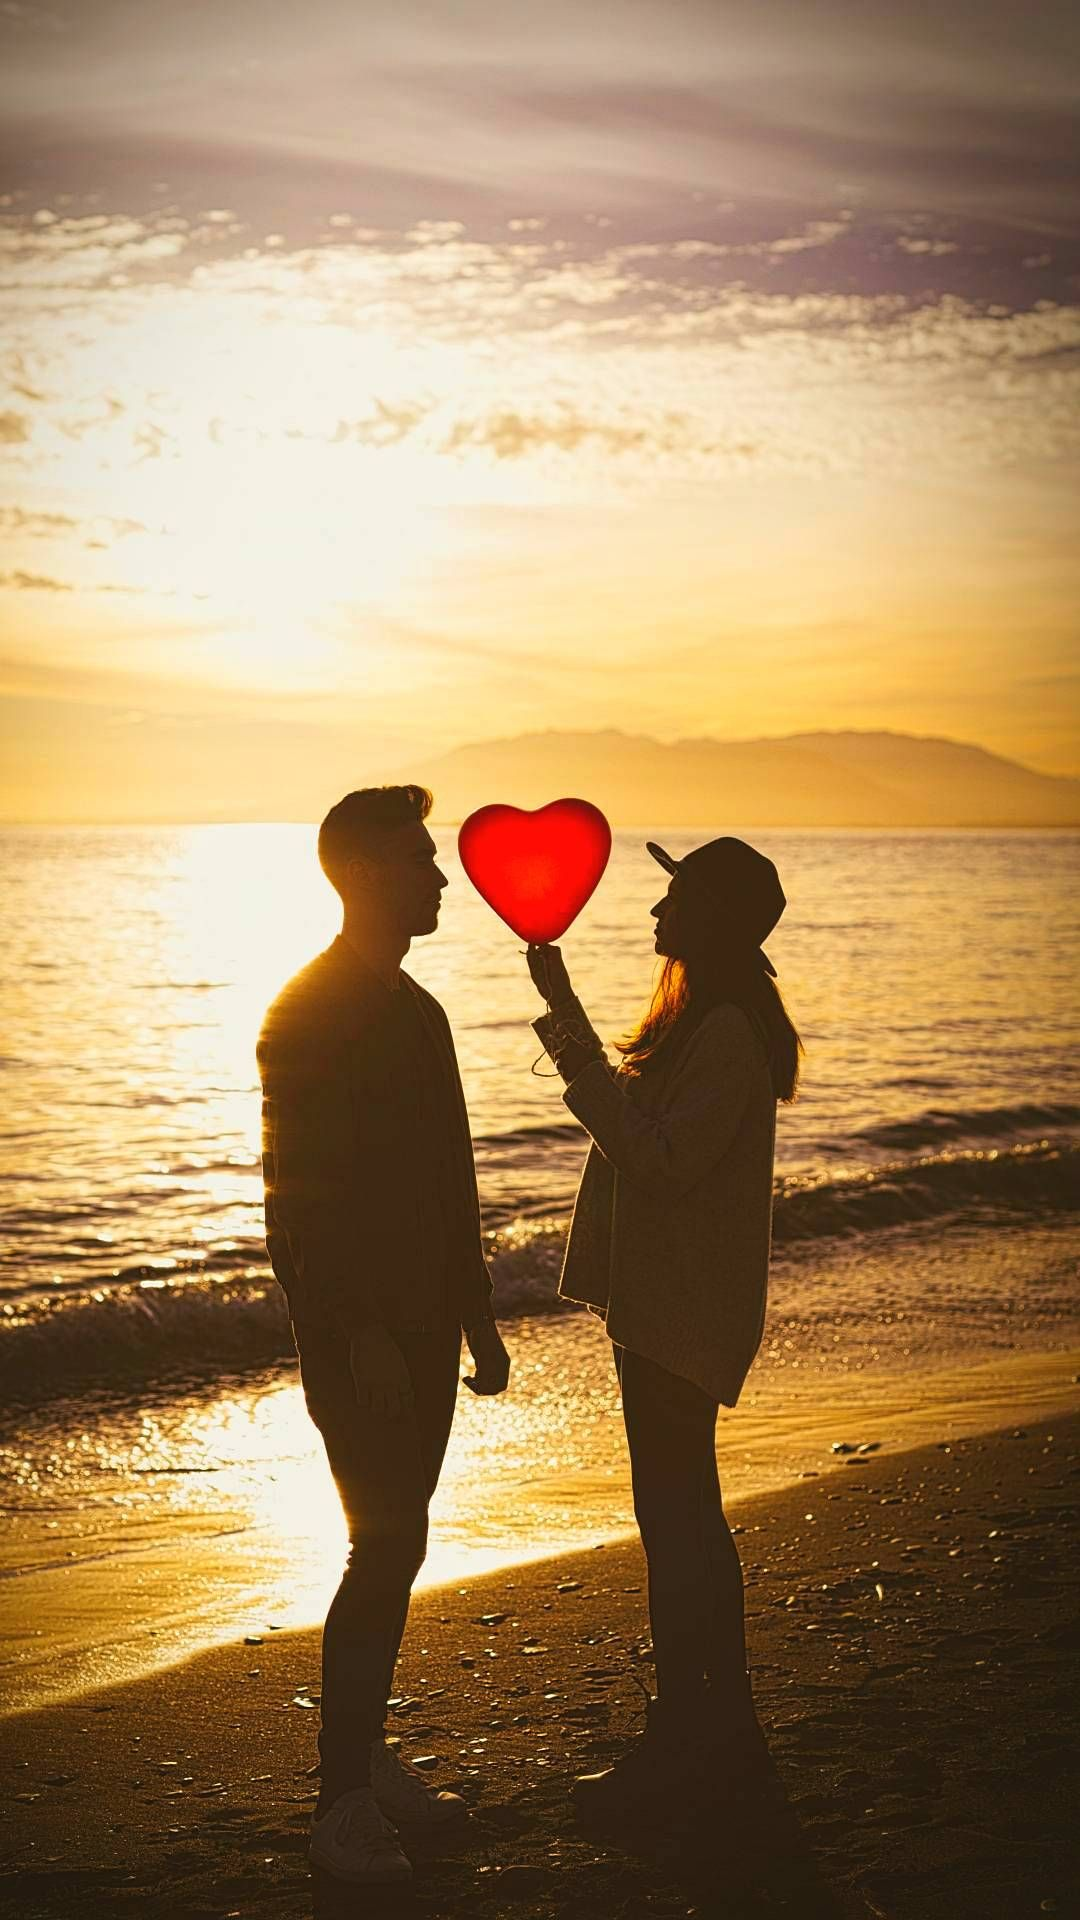 Couples In Sunset Hd Wallpapers 1080x1920 Full Hd Love Wallpaper Love Wallpapers Romantic Download Cute Wallpapers